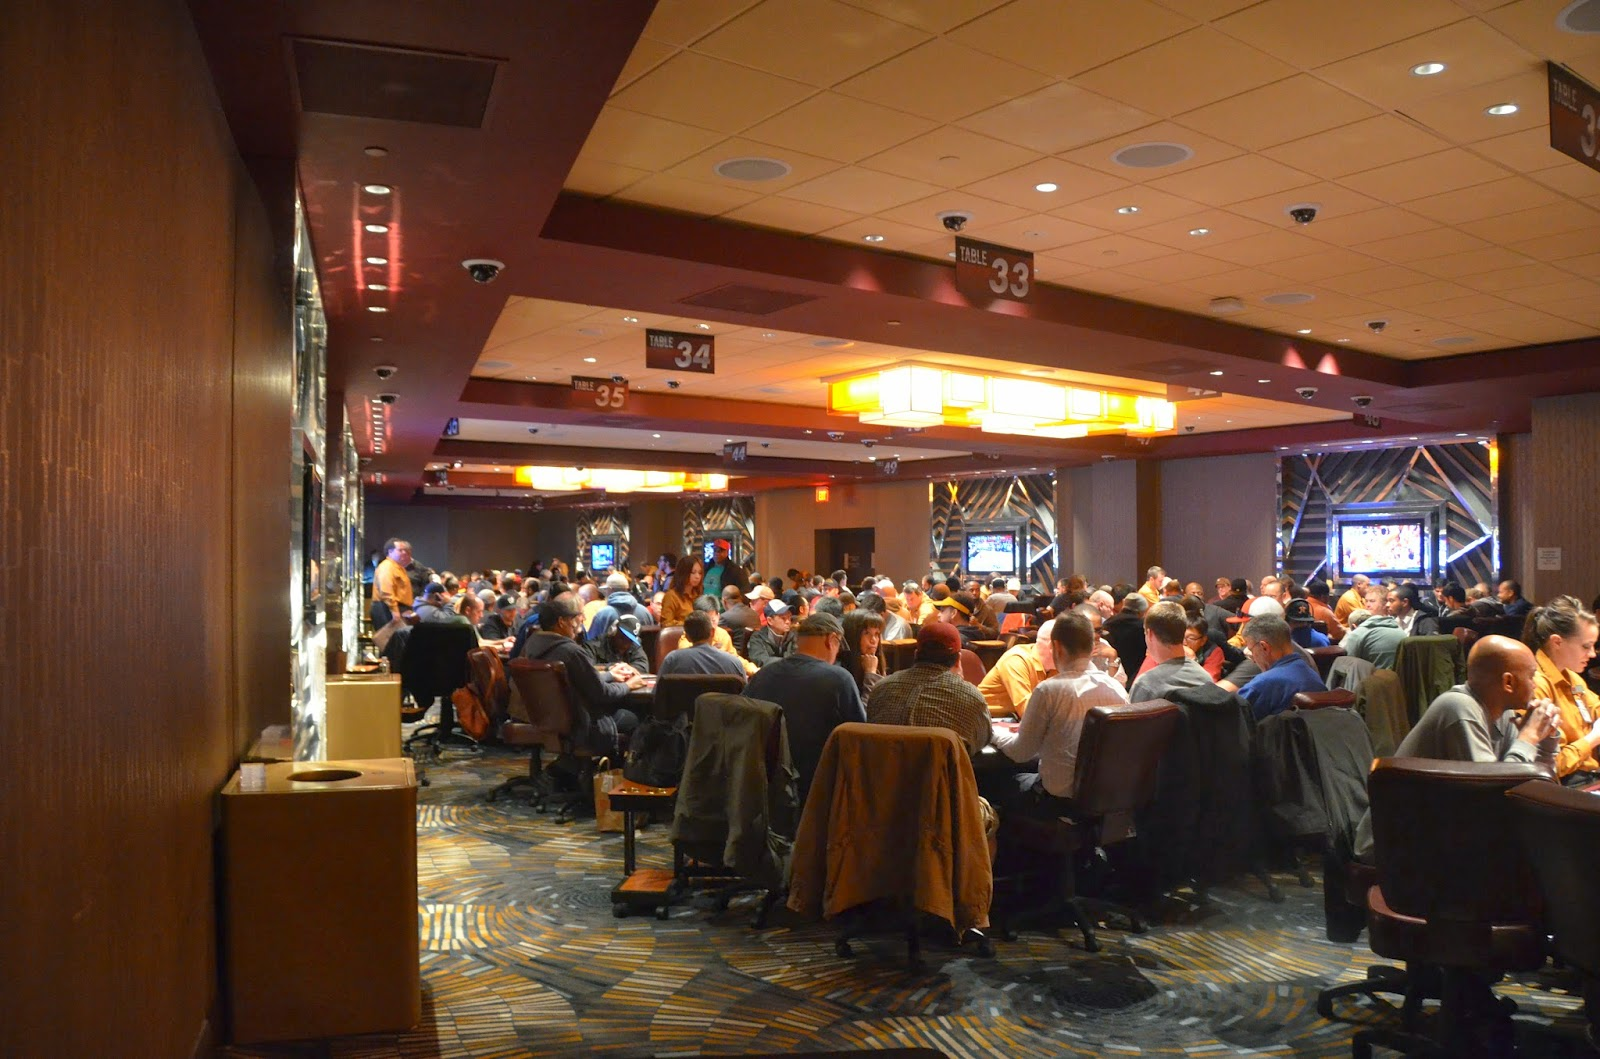 Poker Room Second Floor (Cash Area)